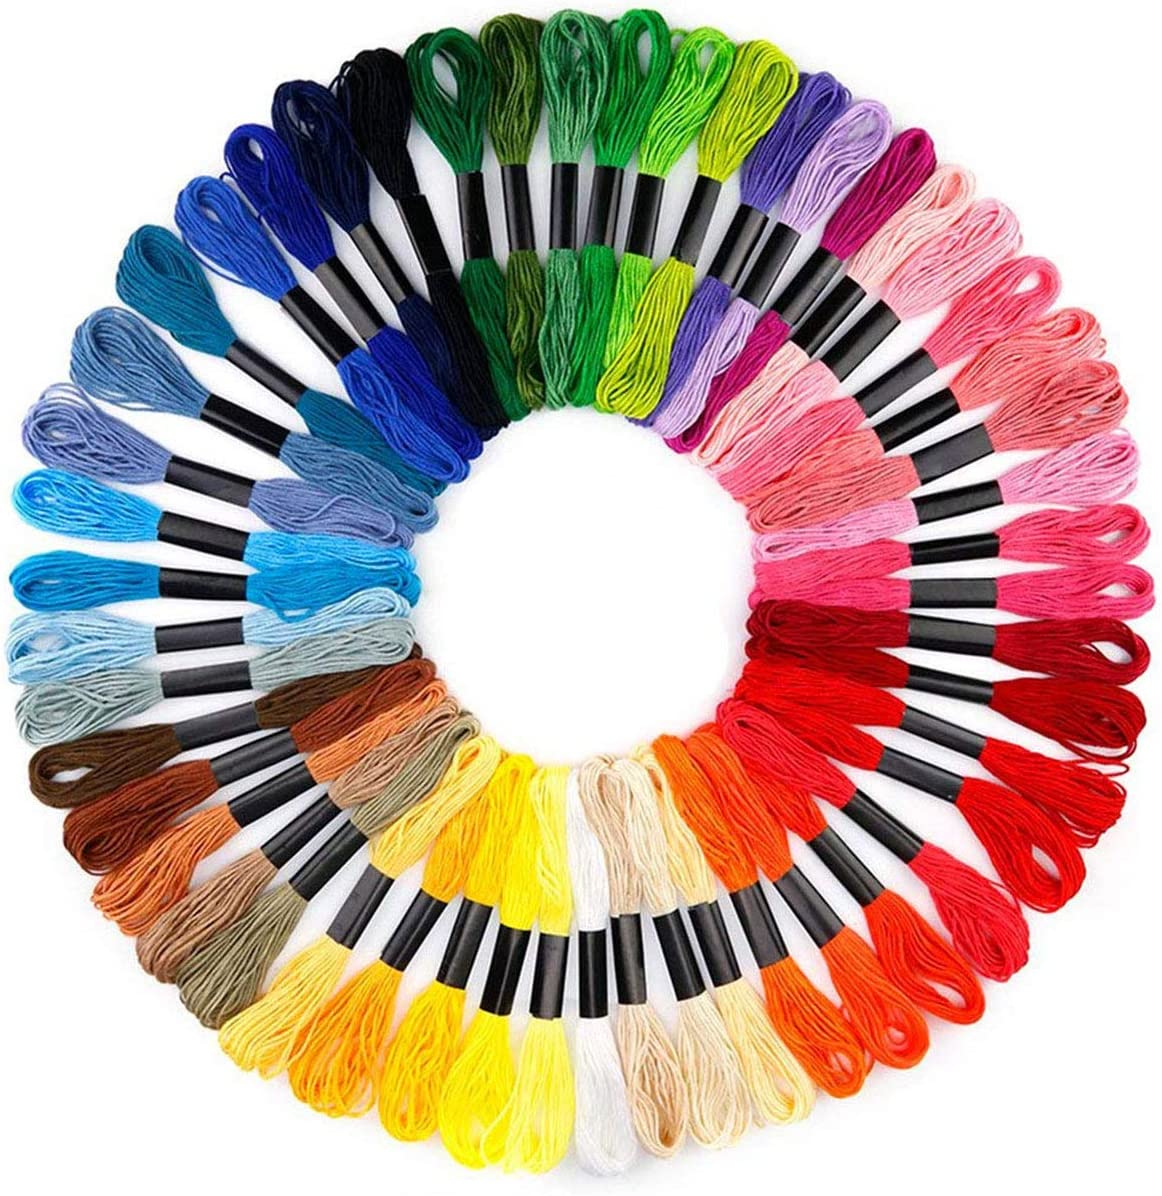 Embroidery Threads, Sewing Thread Kit Rainbow Embroidery ANG Crossstitch Floss for Crafts Floss Decoration, 50pcs